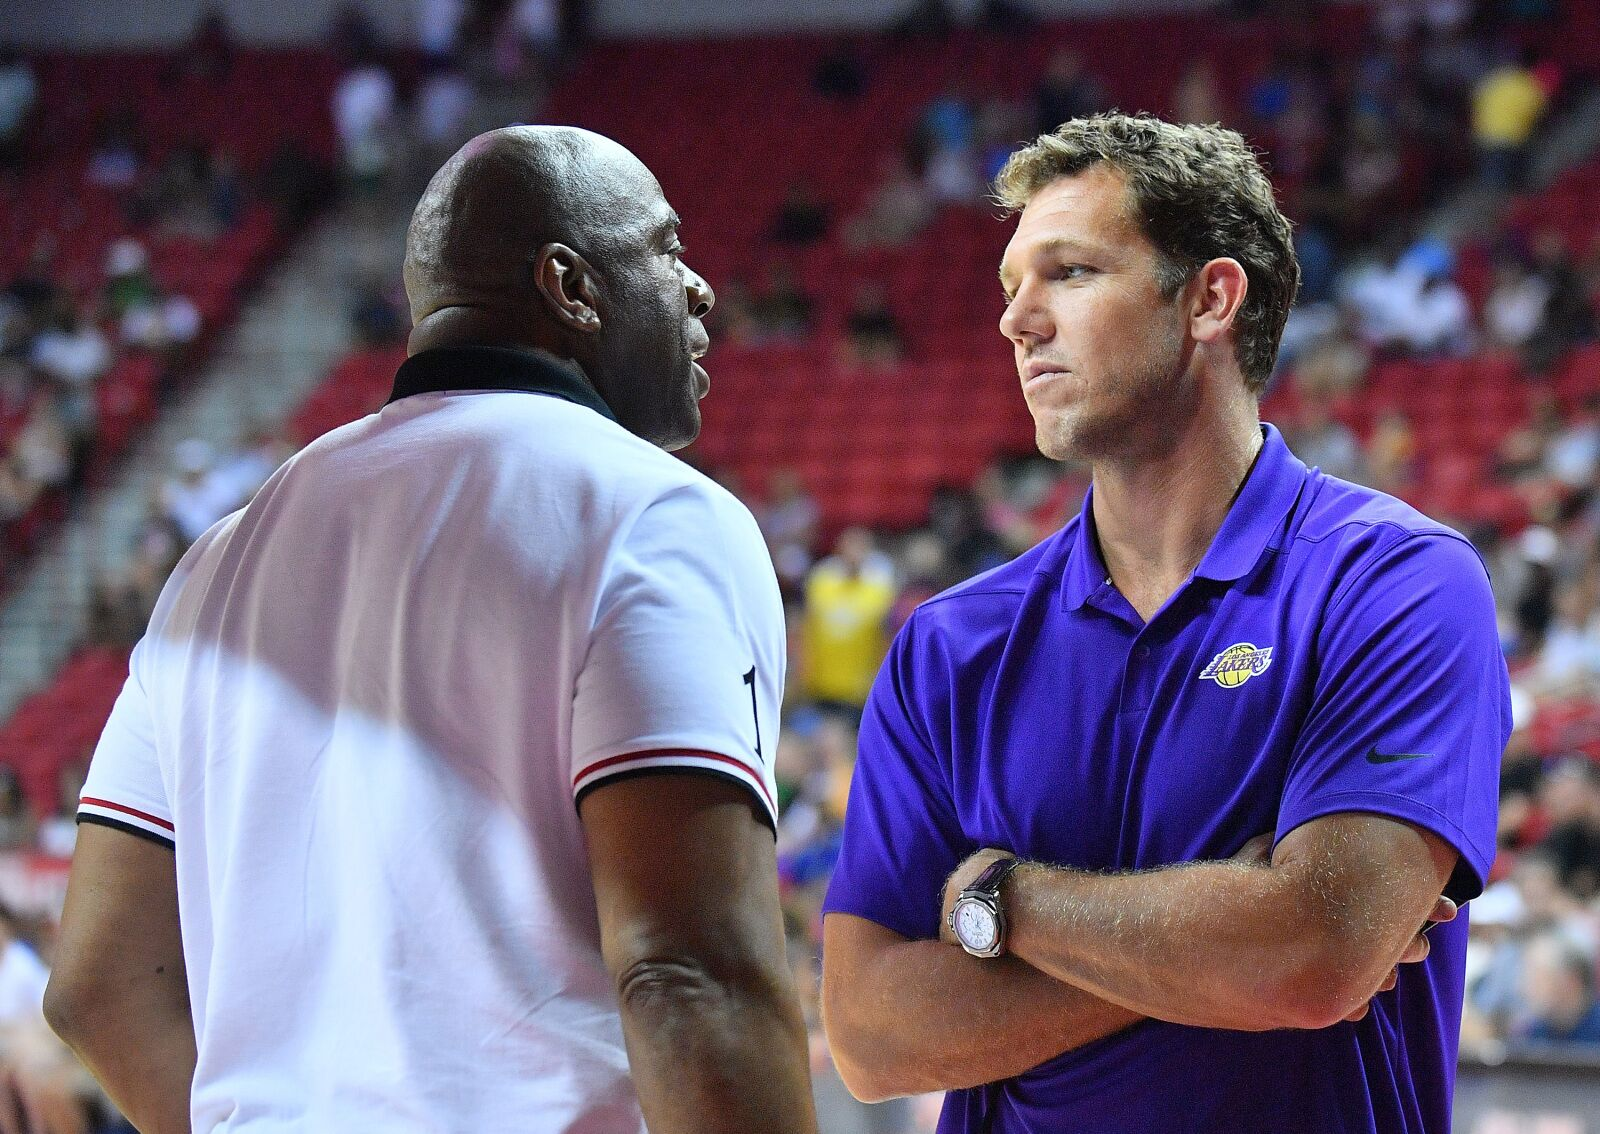 Los Angeles Lakers: Luke Walton's relationship with Magic Johnson has been good!